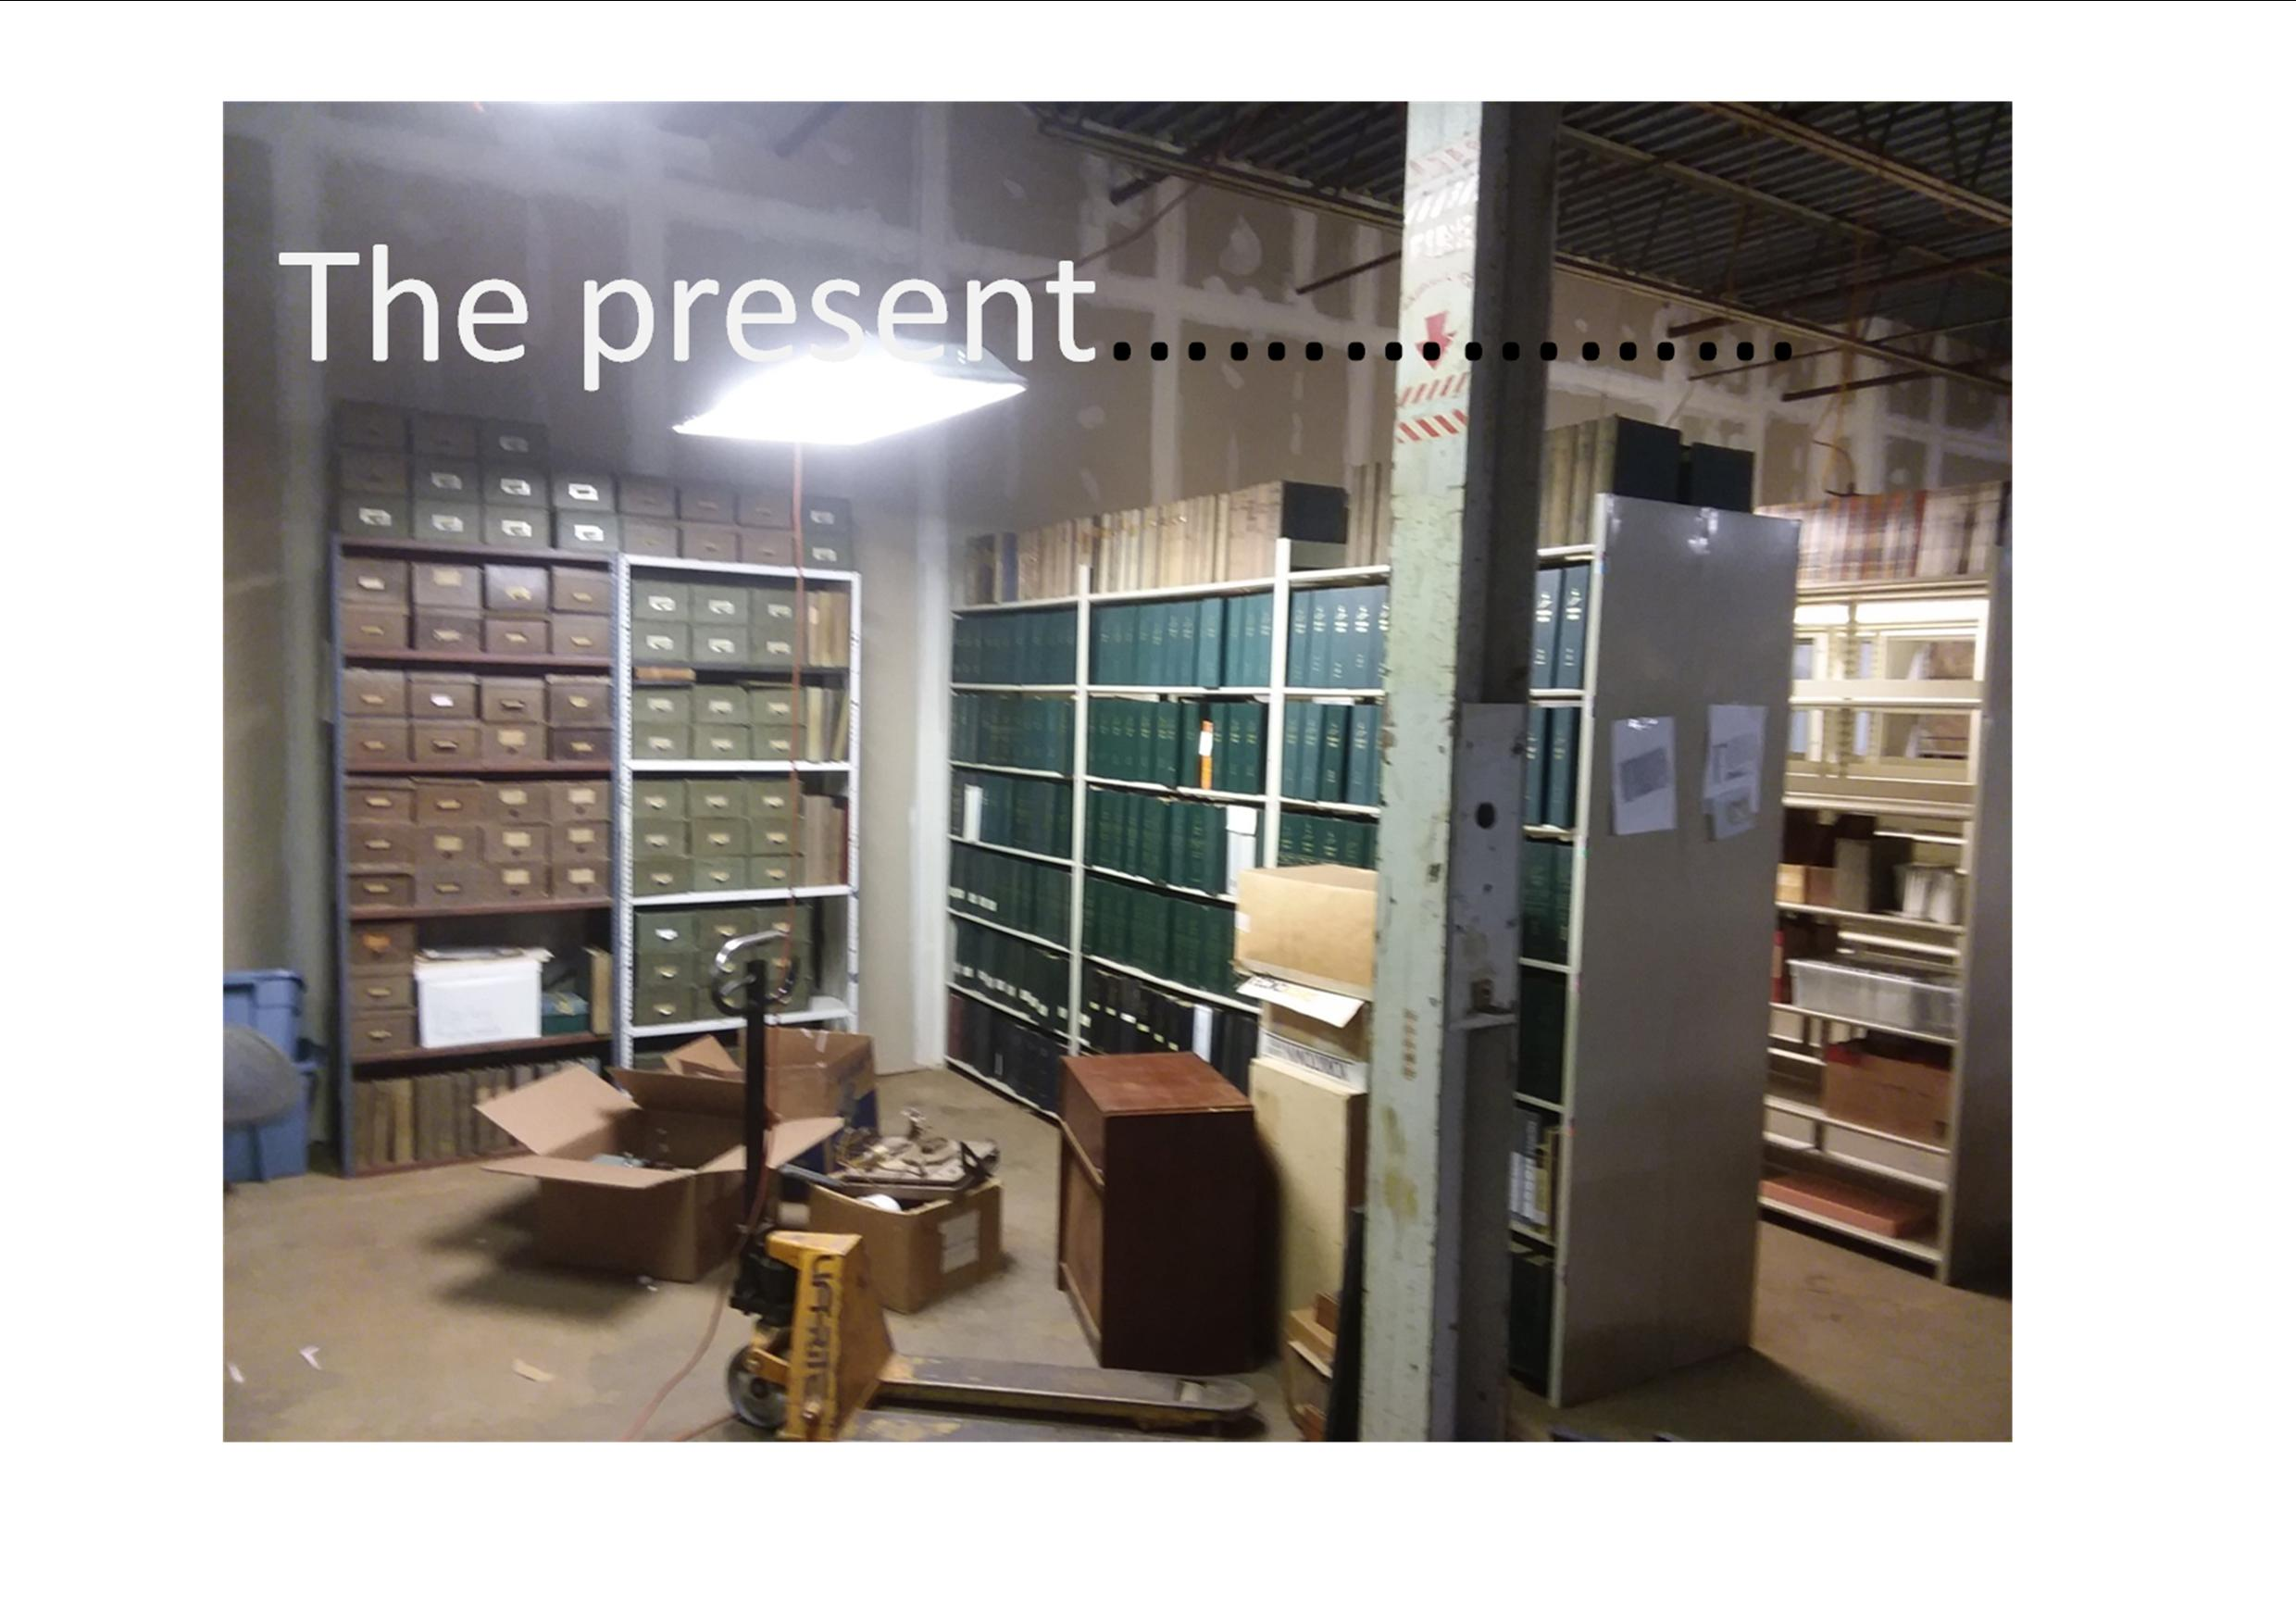 The Present New library.jpg